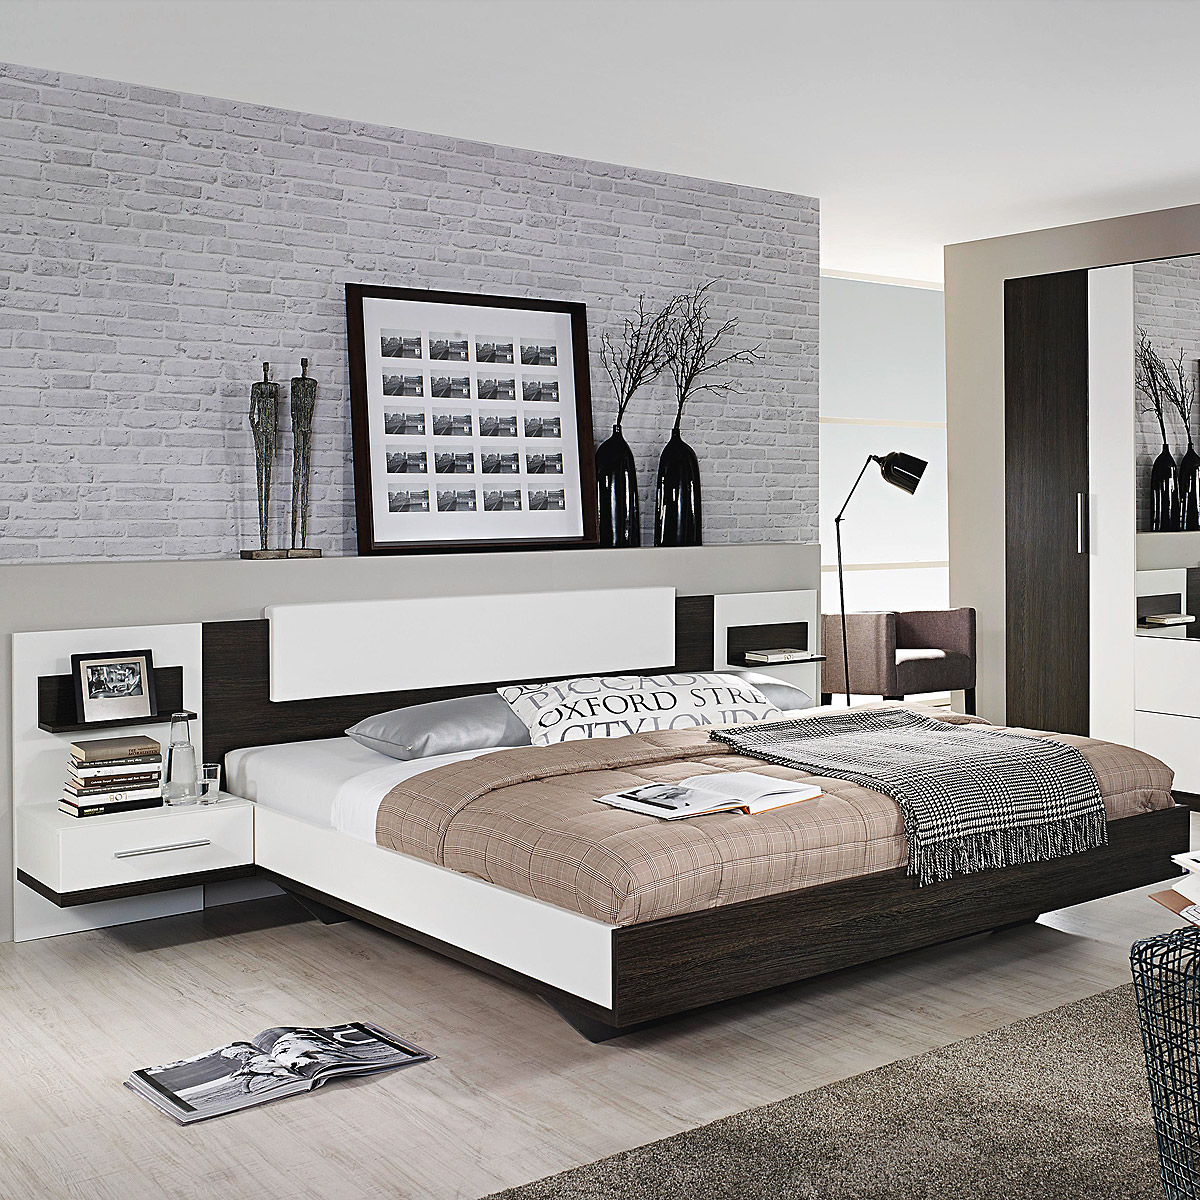 bettanlage bustas bett nako wenge und wei 180x200 cm ebay. Black Bedroom Furniture Sets. Home Design Ideas